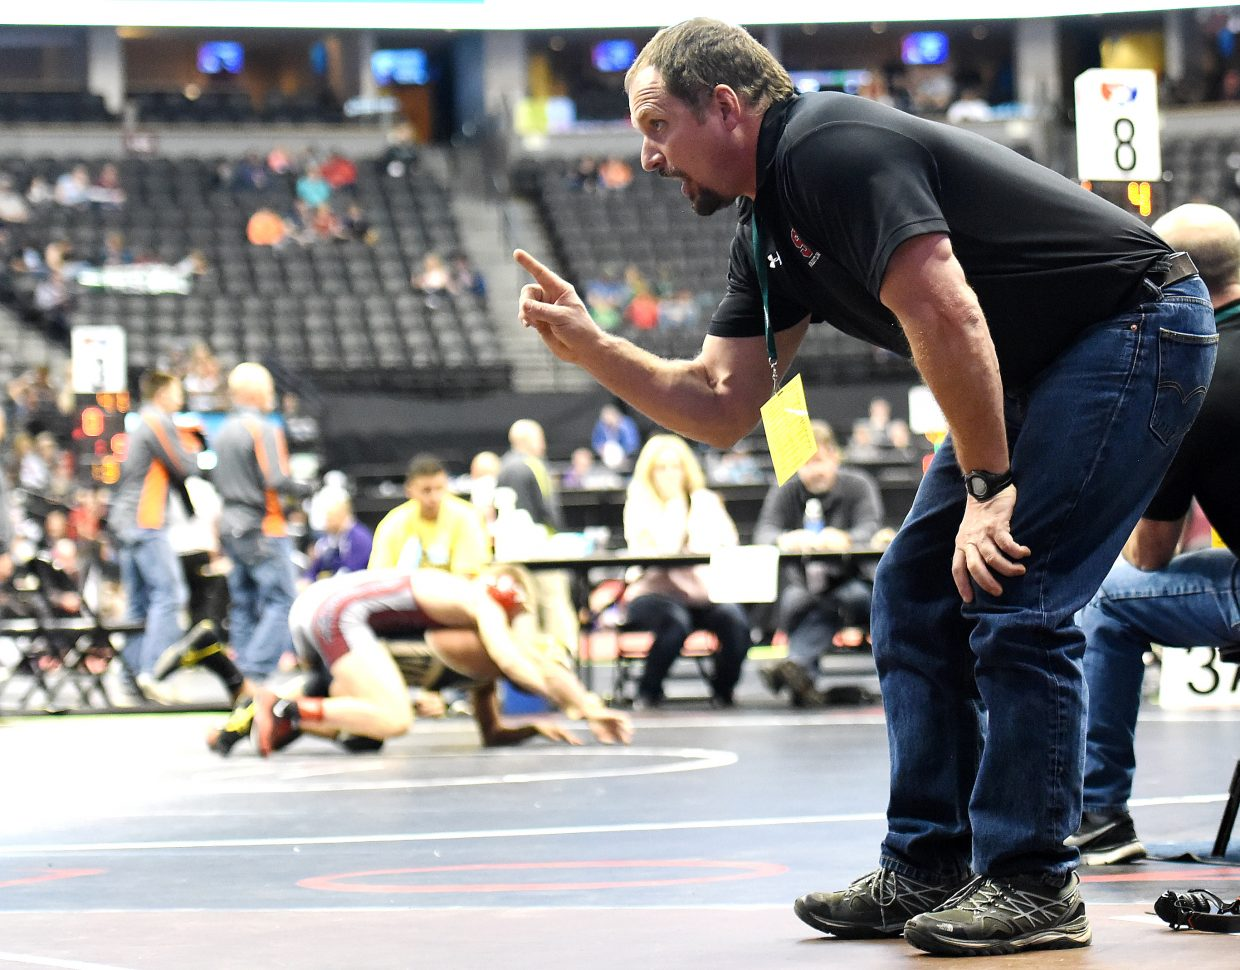 Steamboat Springs High School wrestling coach Travis Bryant passes along instruction Thursday at the state wrestling tournament in Denver.